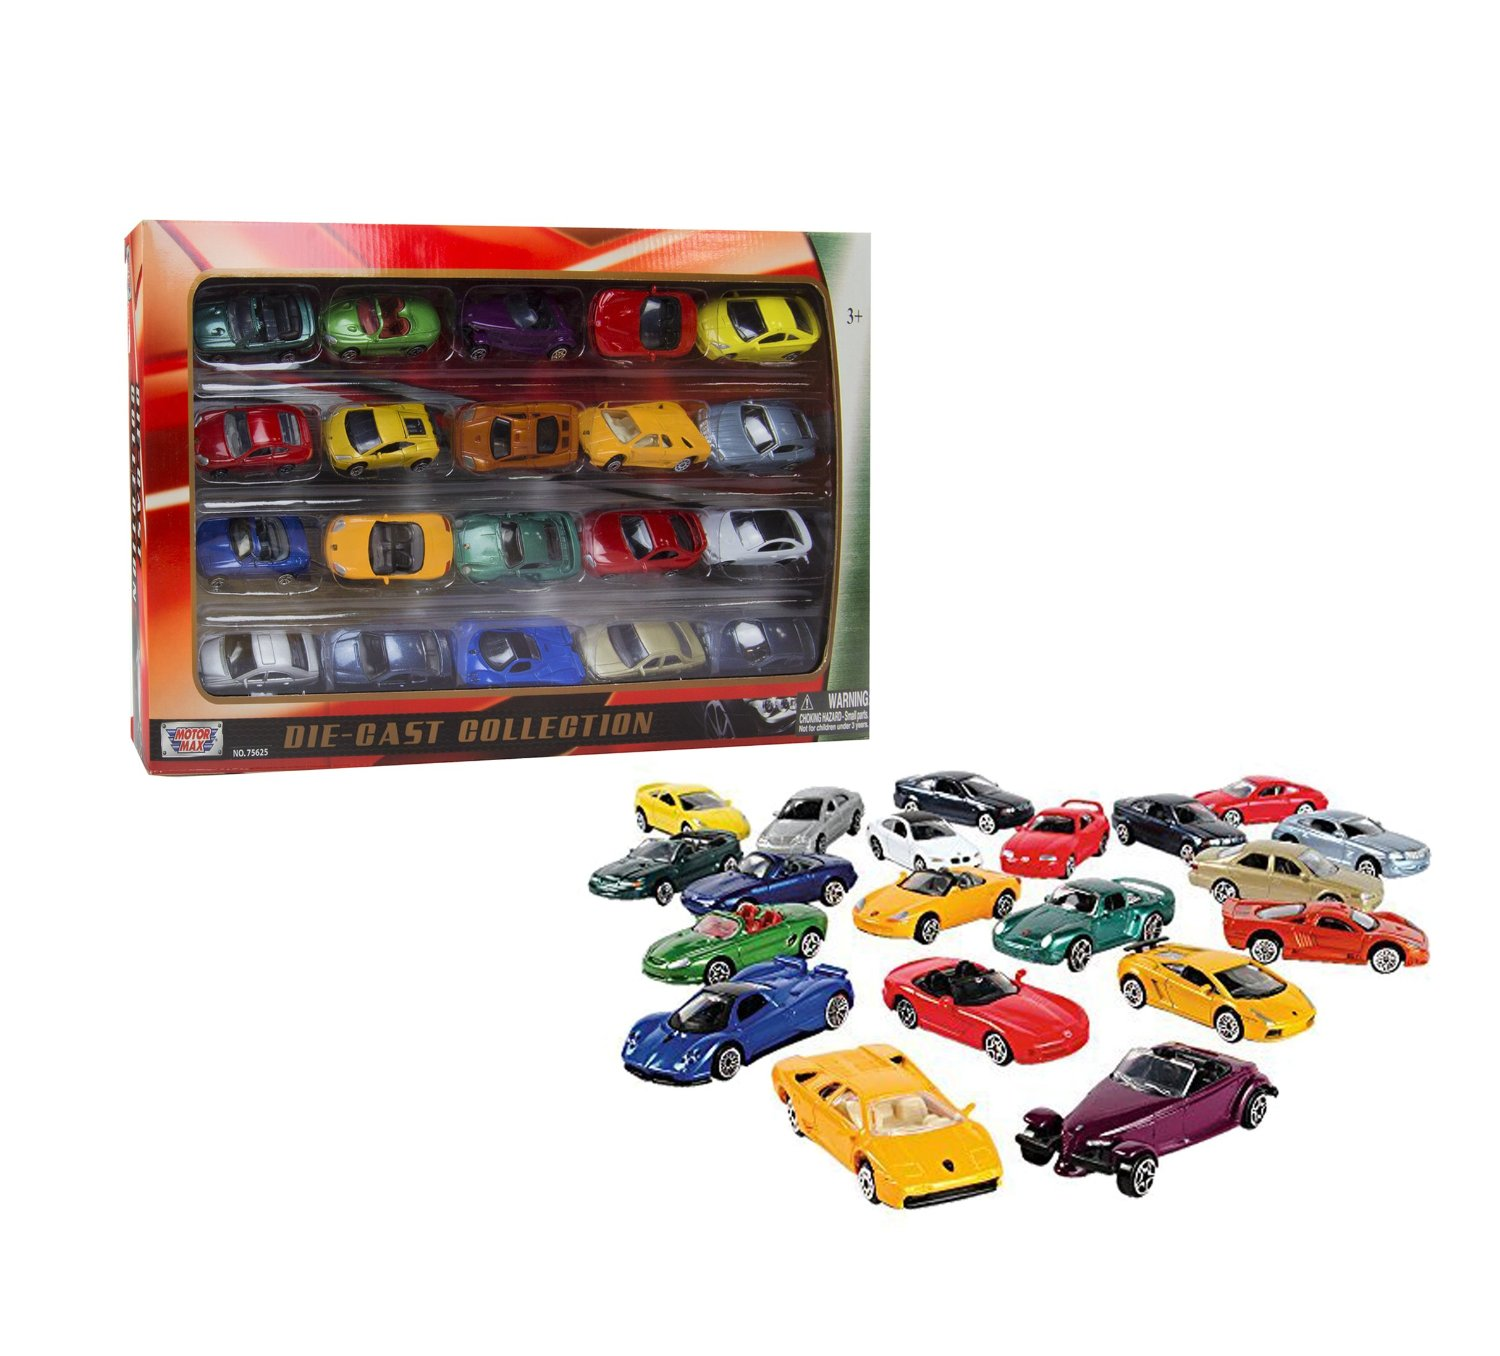 Constructive Playthings Die-Cast Authentic Super Wheels Classic Metal Cars – Great For Car Lovers – Luxury Models Range from Porsche and BMW to Mini Cooper and Mustang – BPA and PVC Free – 20 Piece